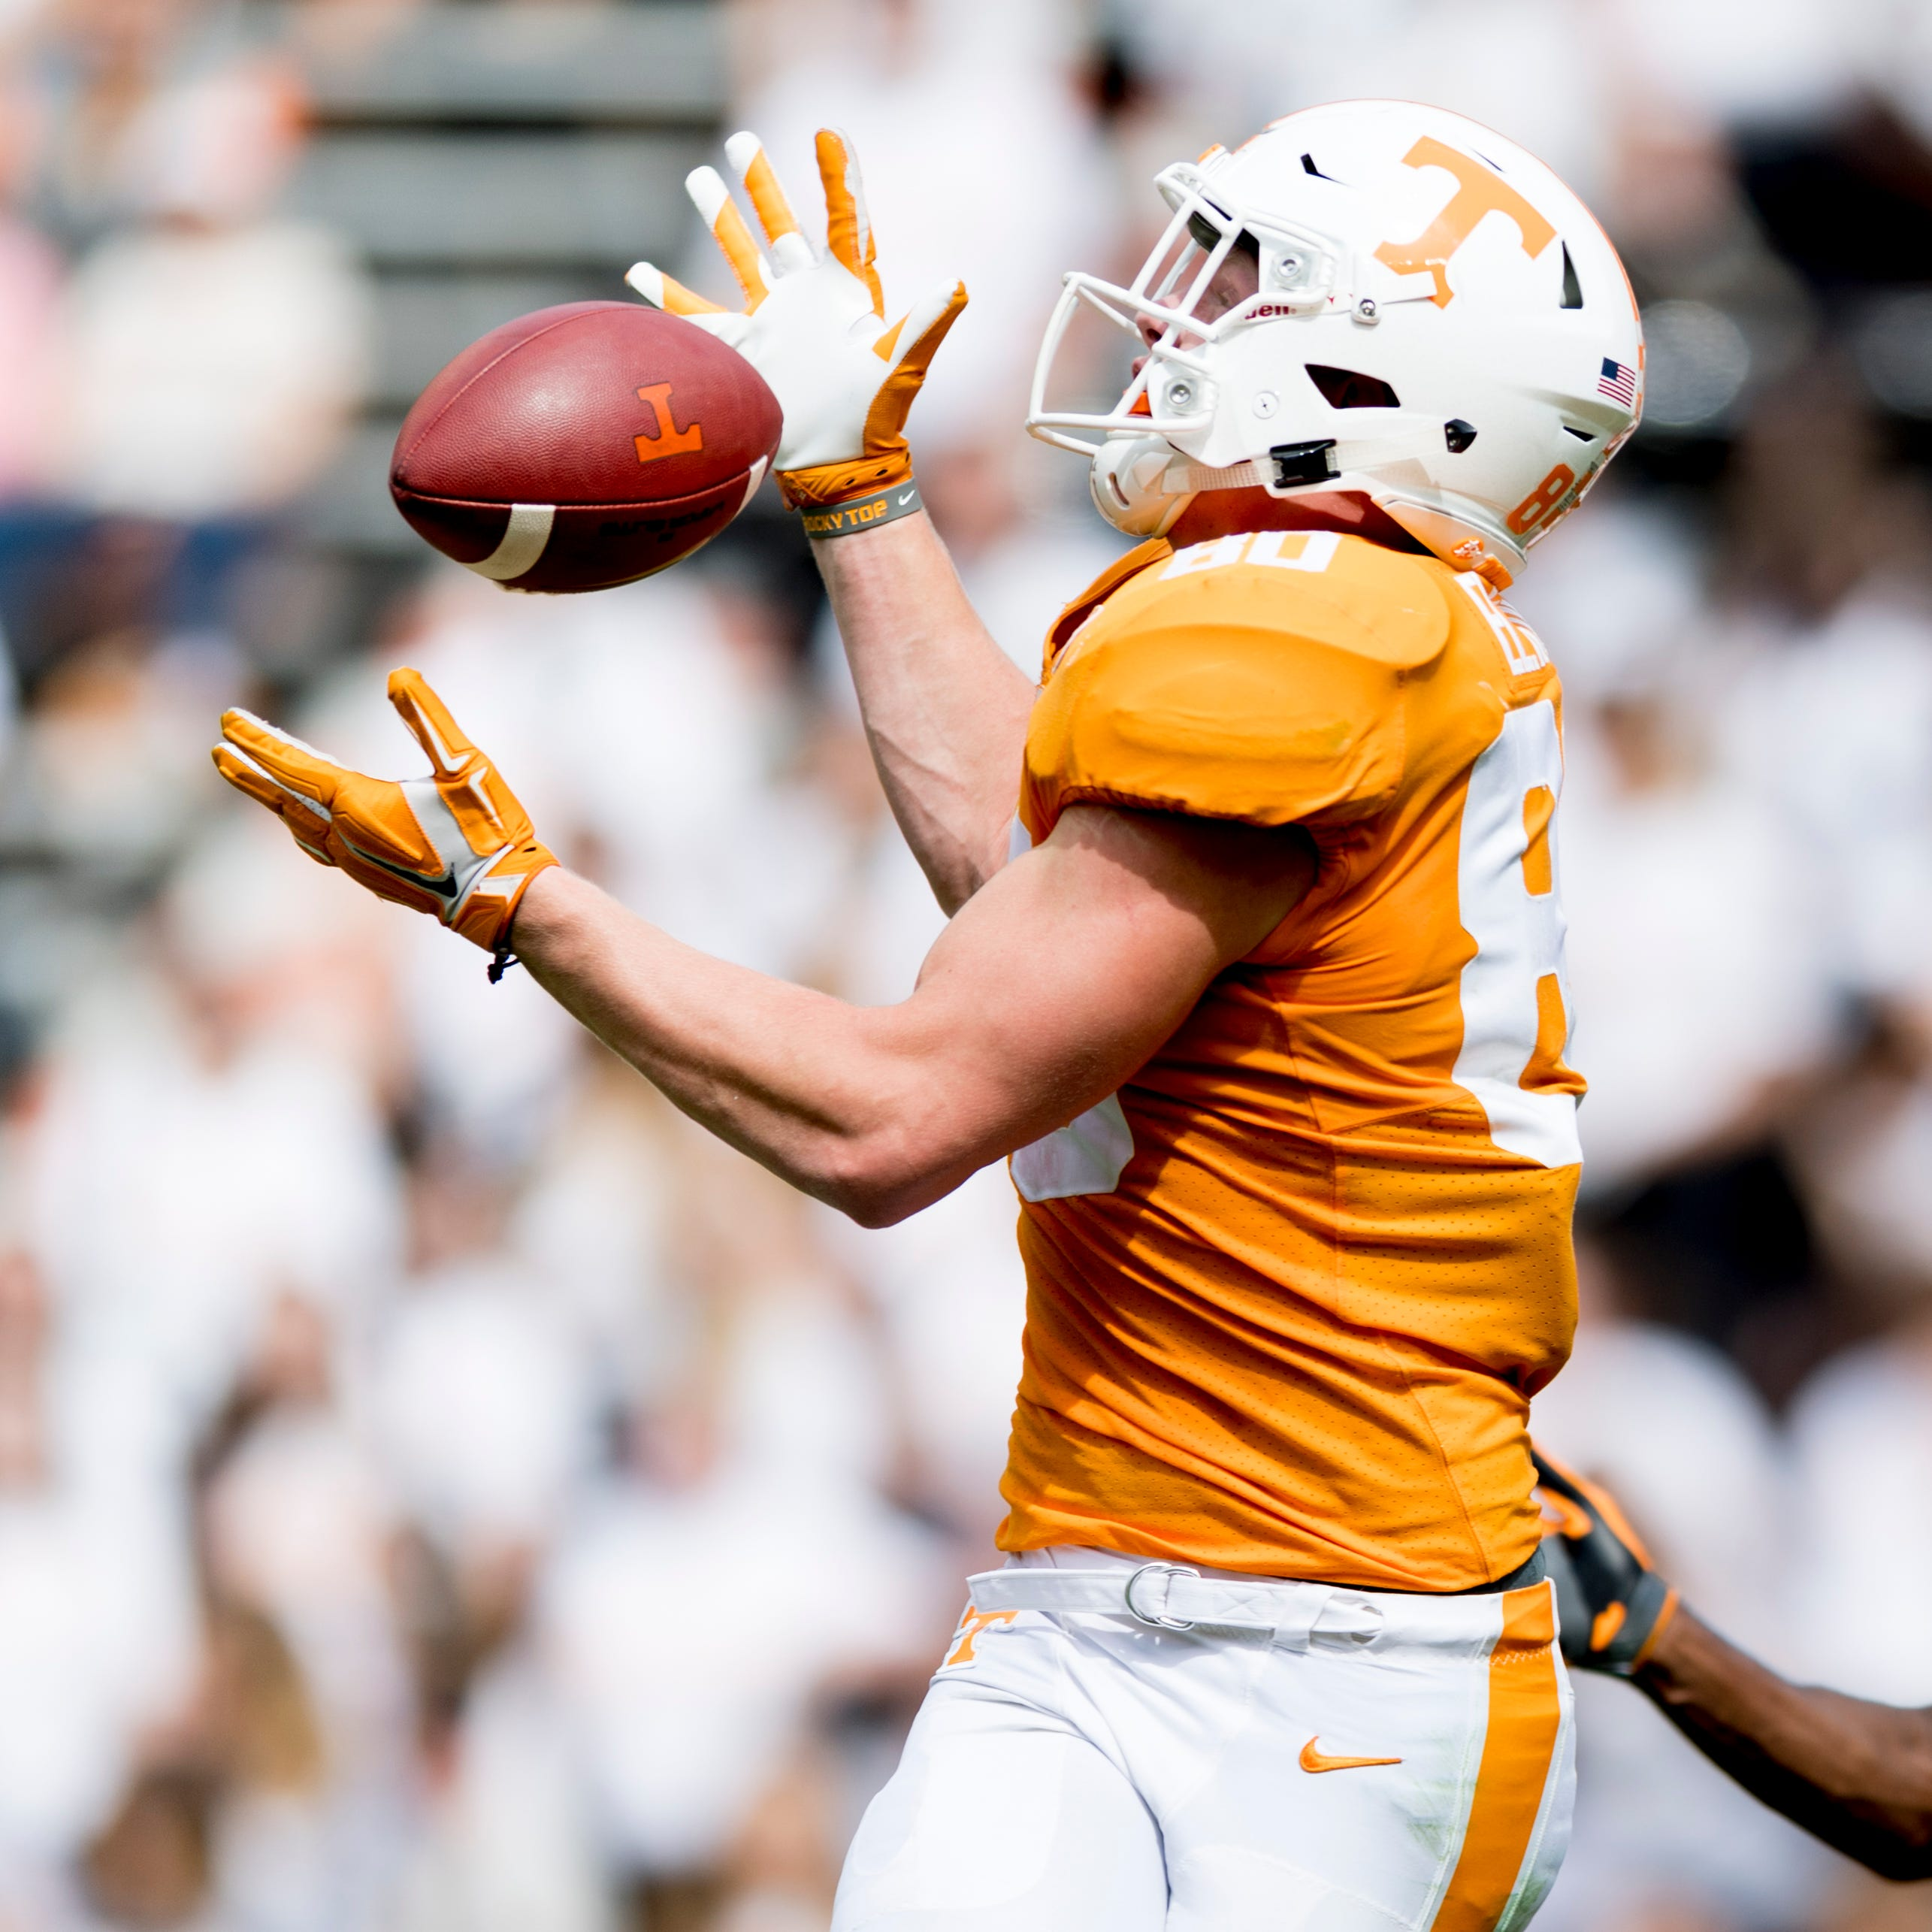 Mike Strange: UT Vols need to recruit more football players from Ohio